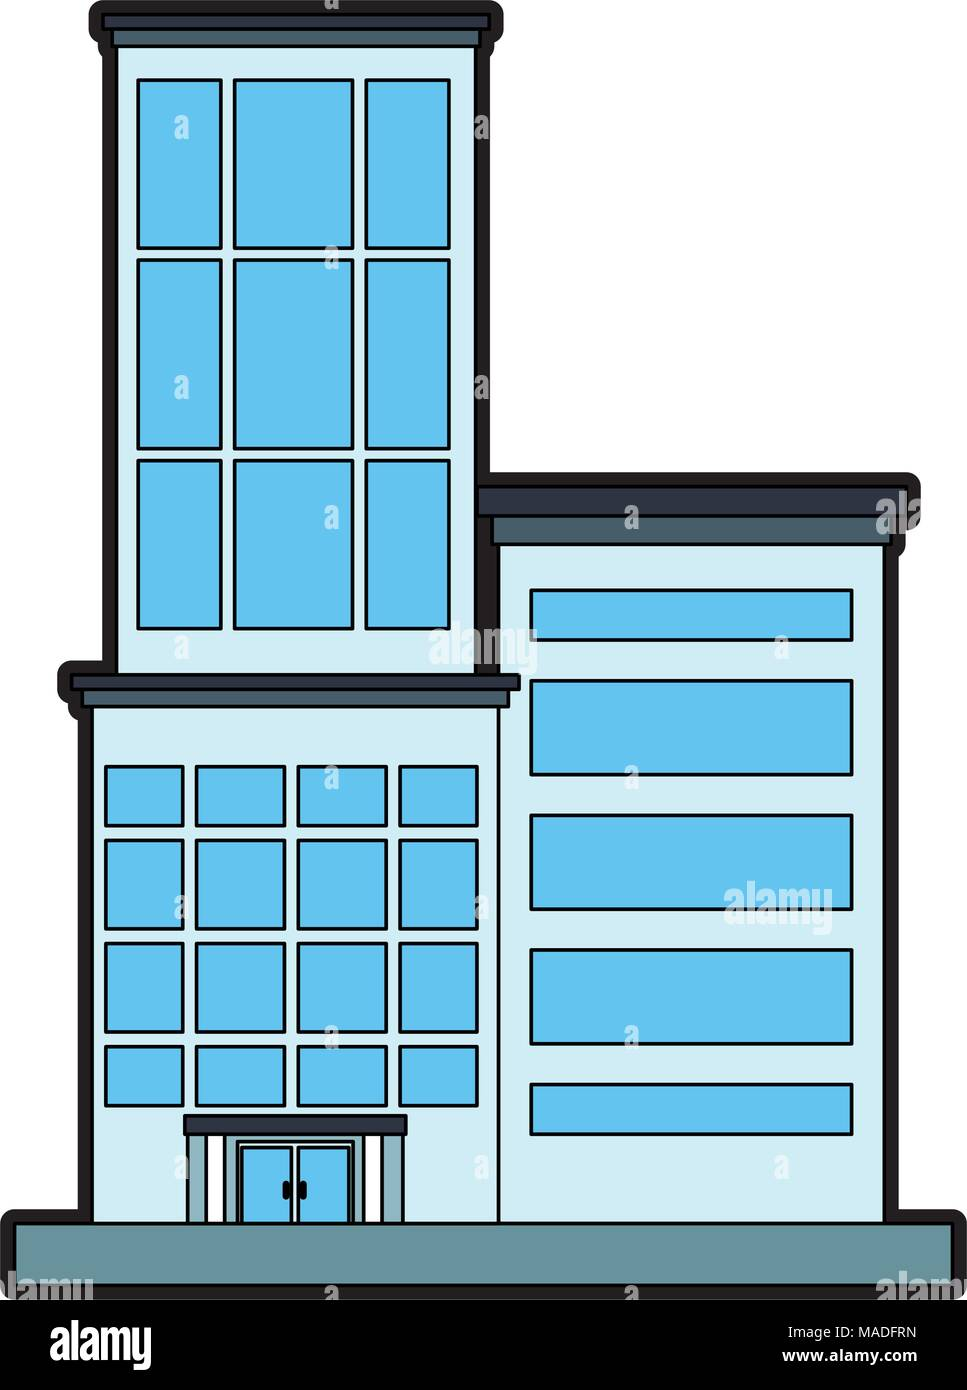 Office Building Cartoon Stock Vector Art Illustration Vector